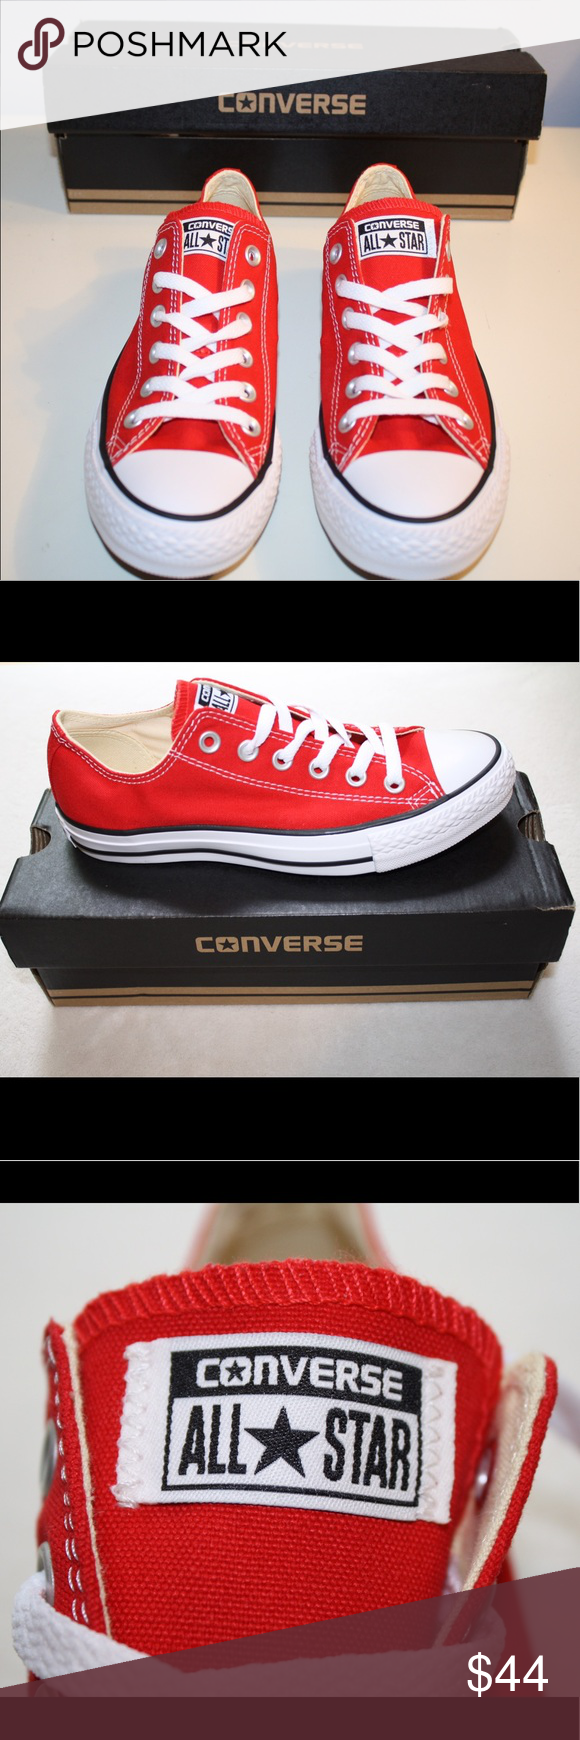 930509708b18 Converse Chuck Taylor All Star Low Top Brand new